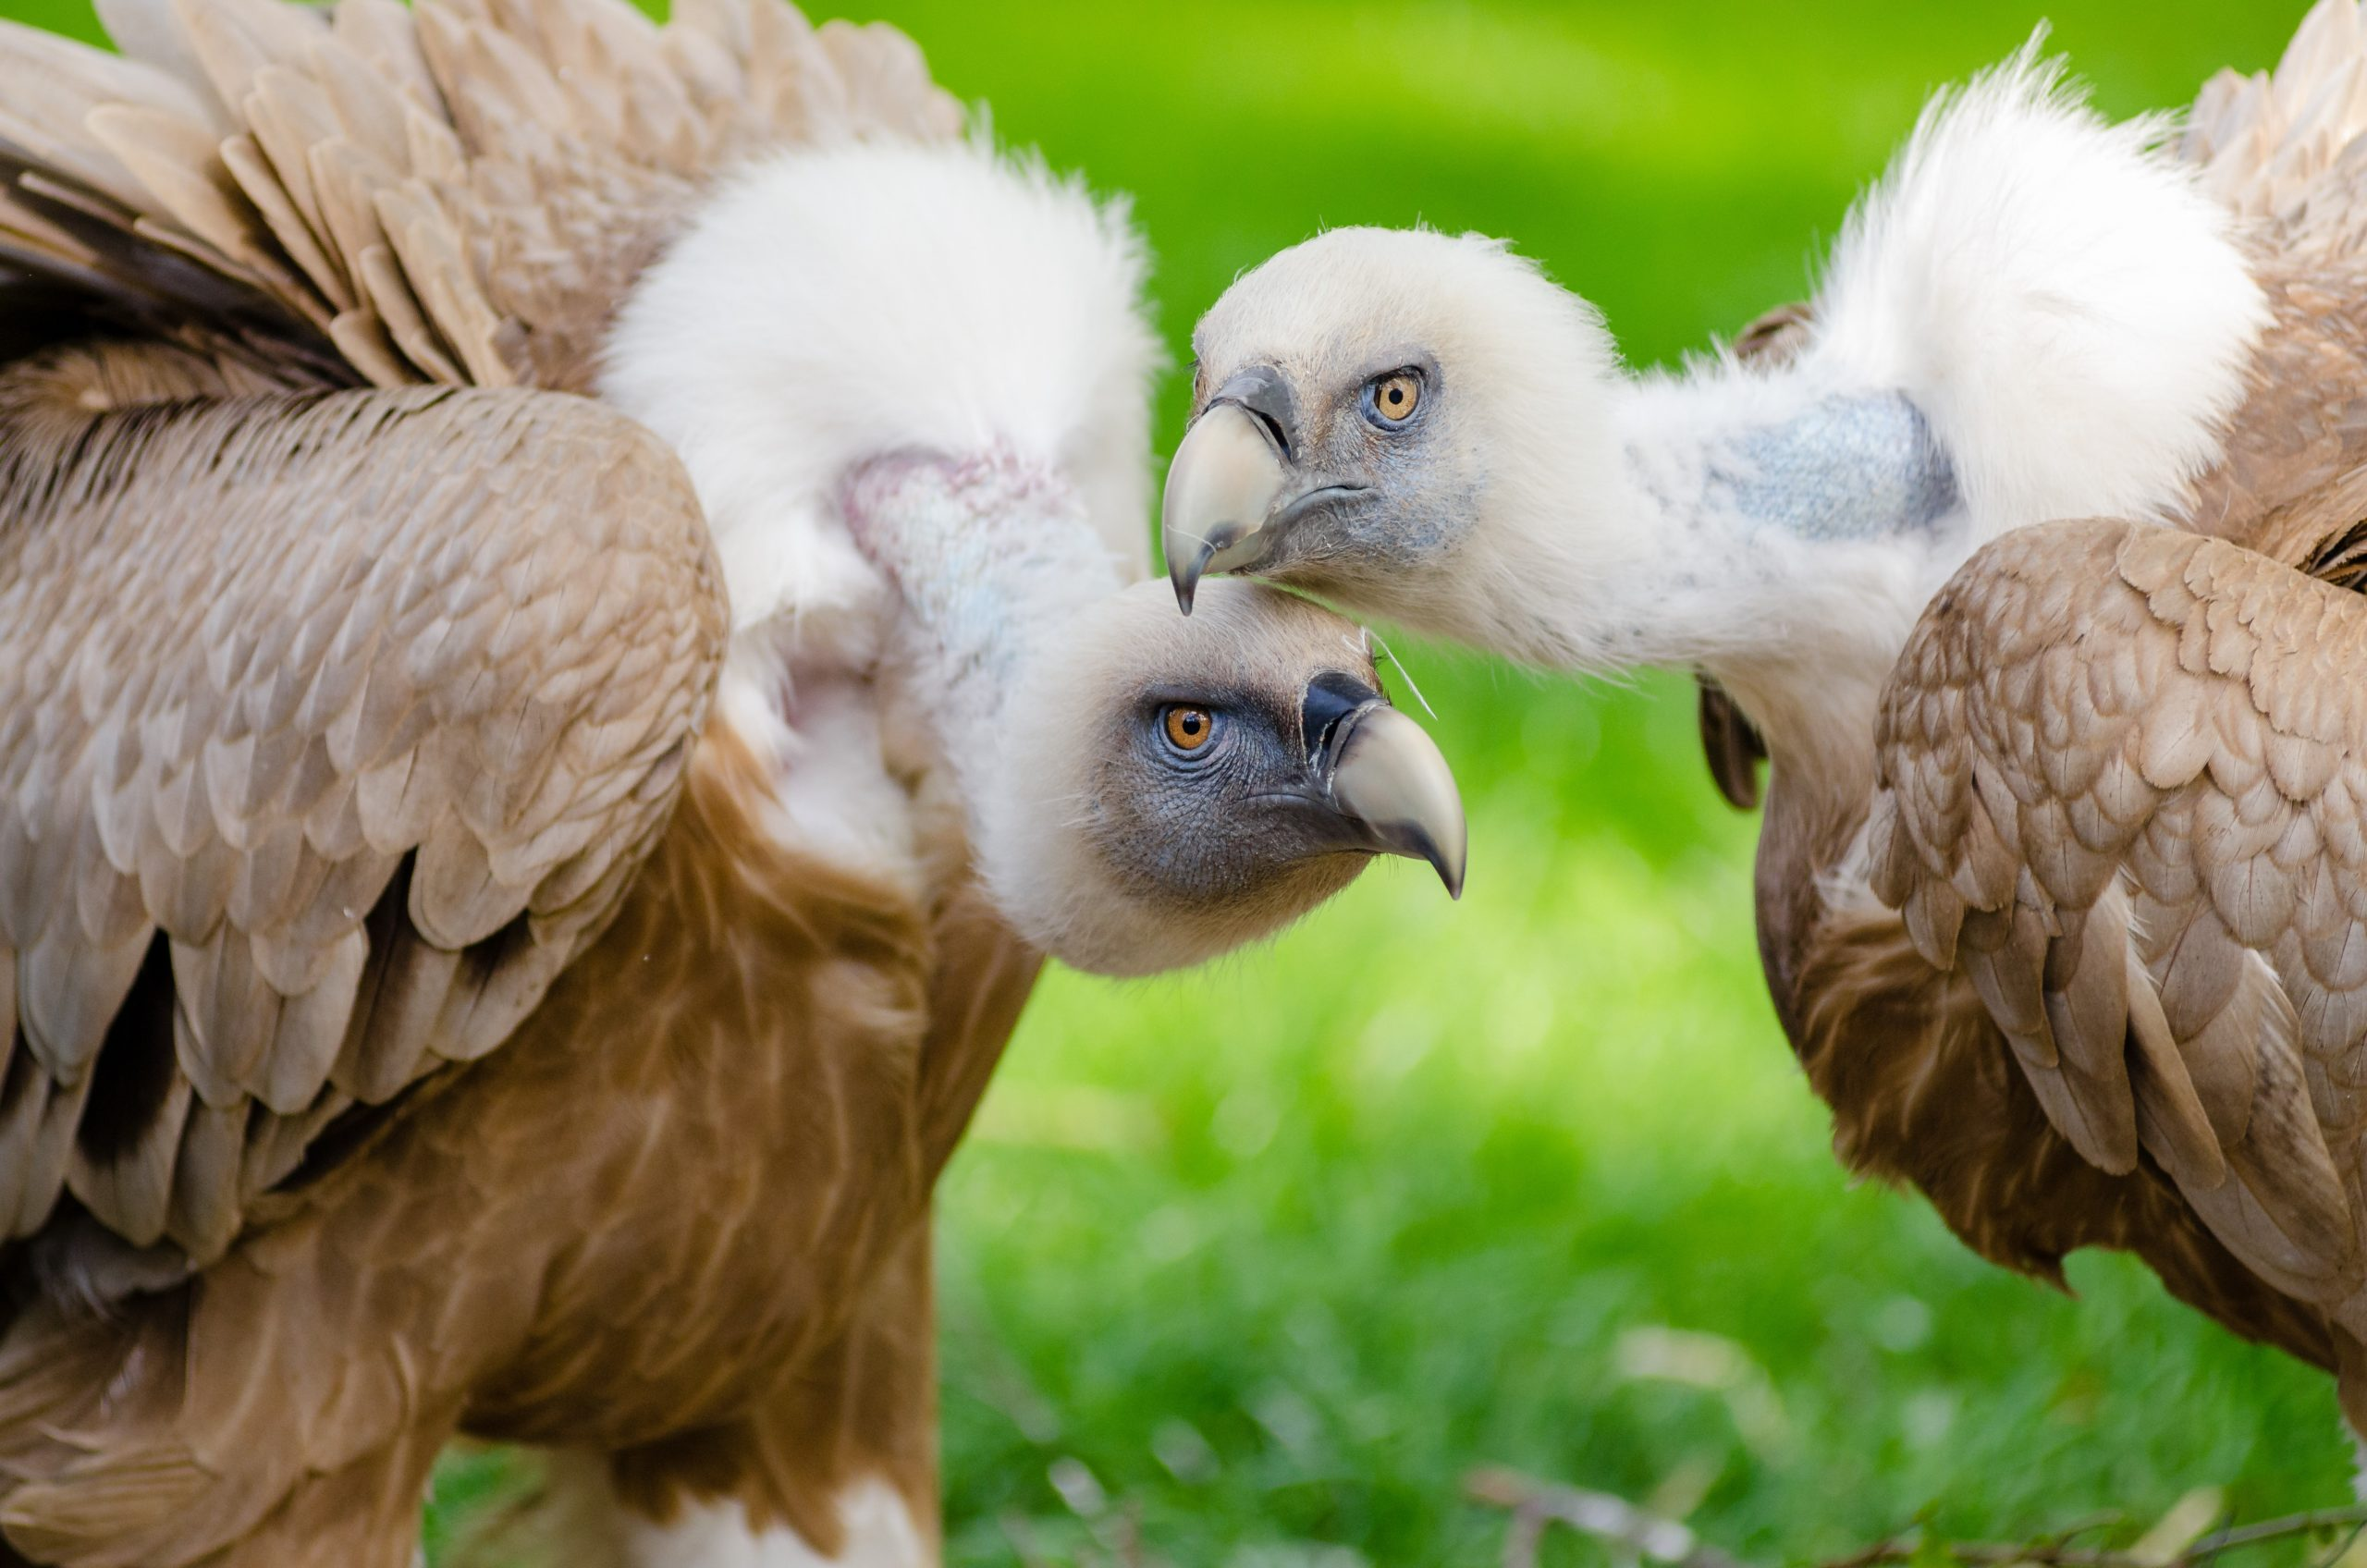 brown and white vultures standing on grass field in close up scaled - Get Out There